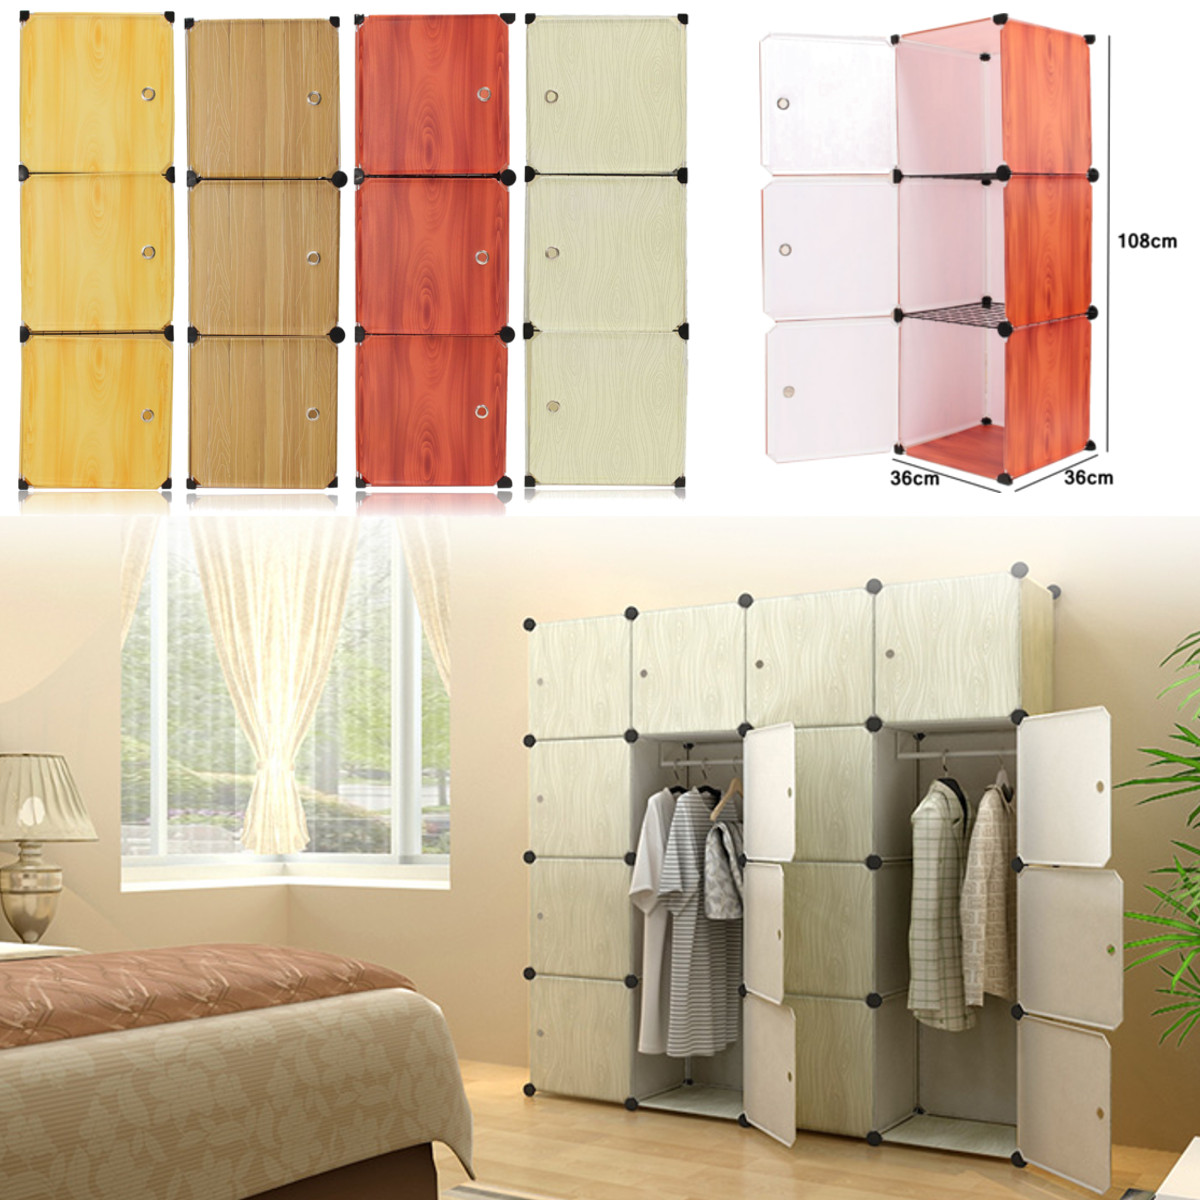 36x36x108cm DIY Resin Wood Grain Wardrobe Closet Cabinet Box Storage Organizer Four Colors Brown Yellow Red